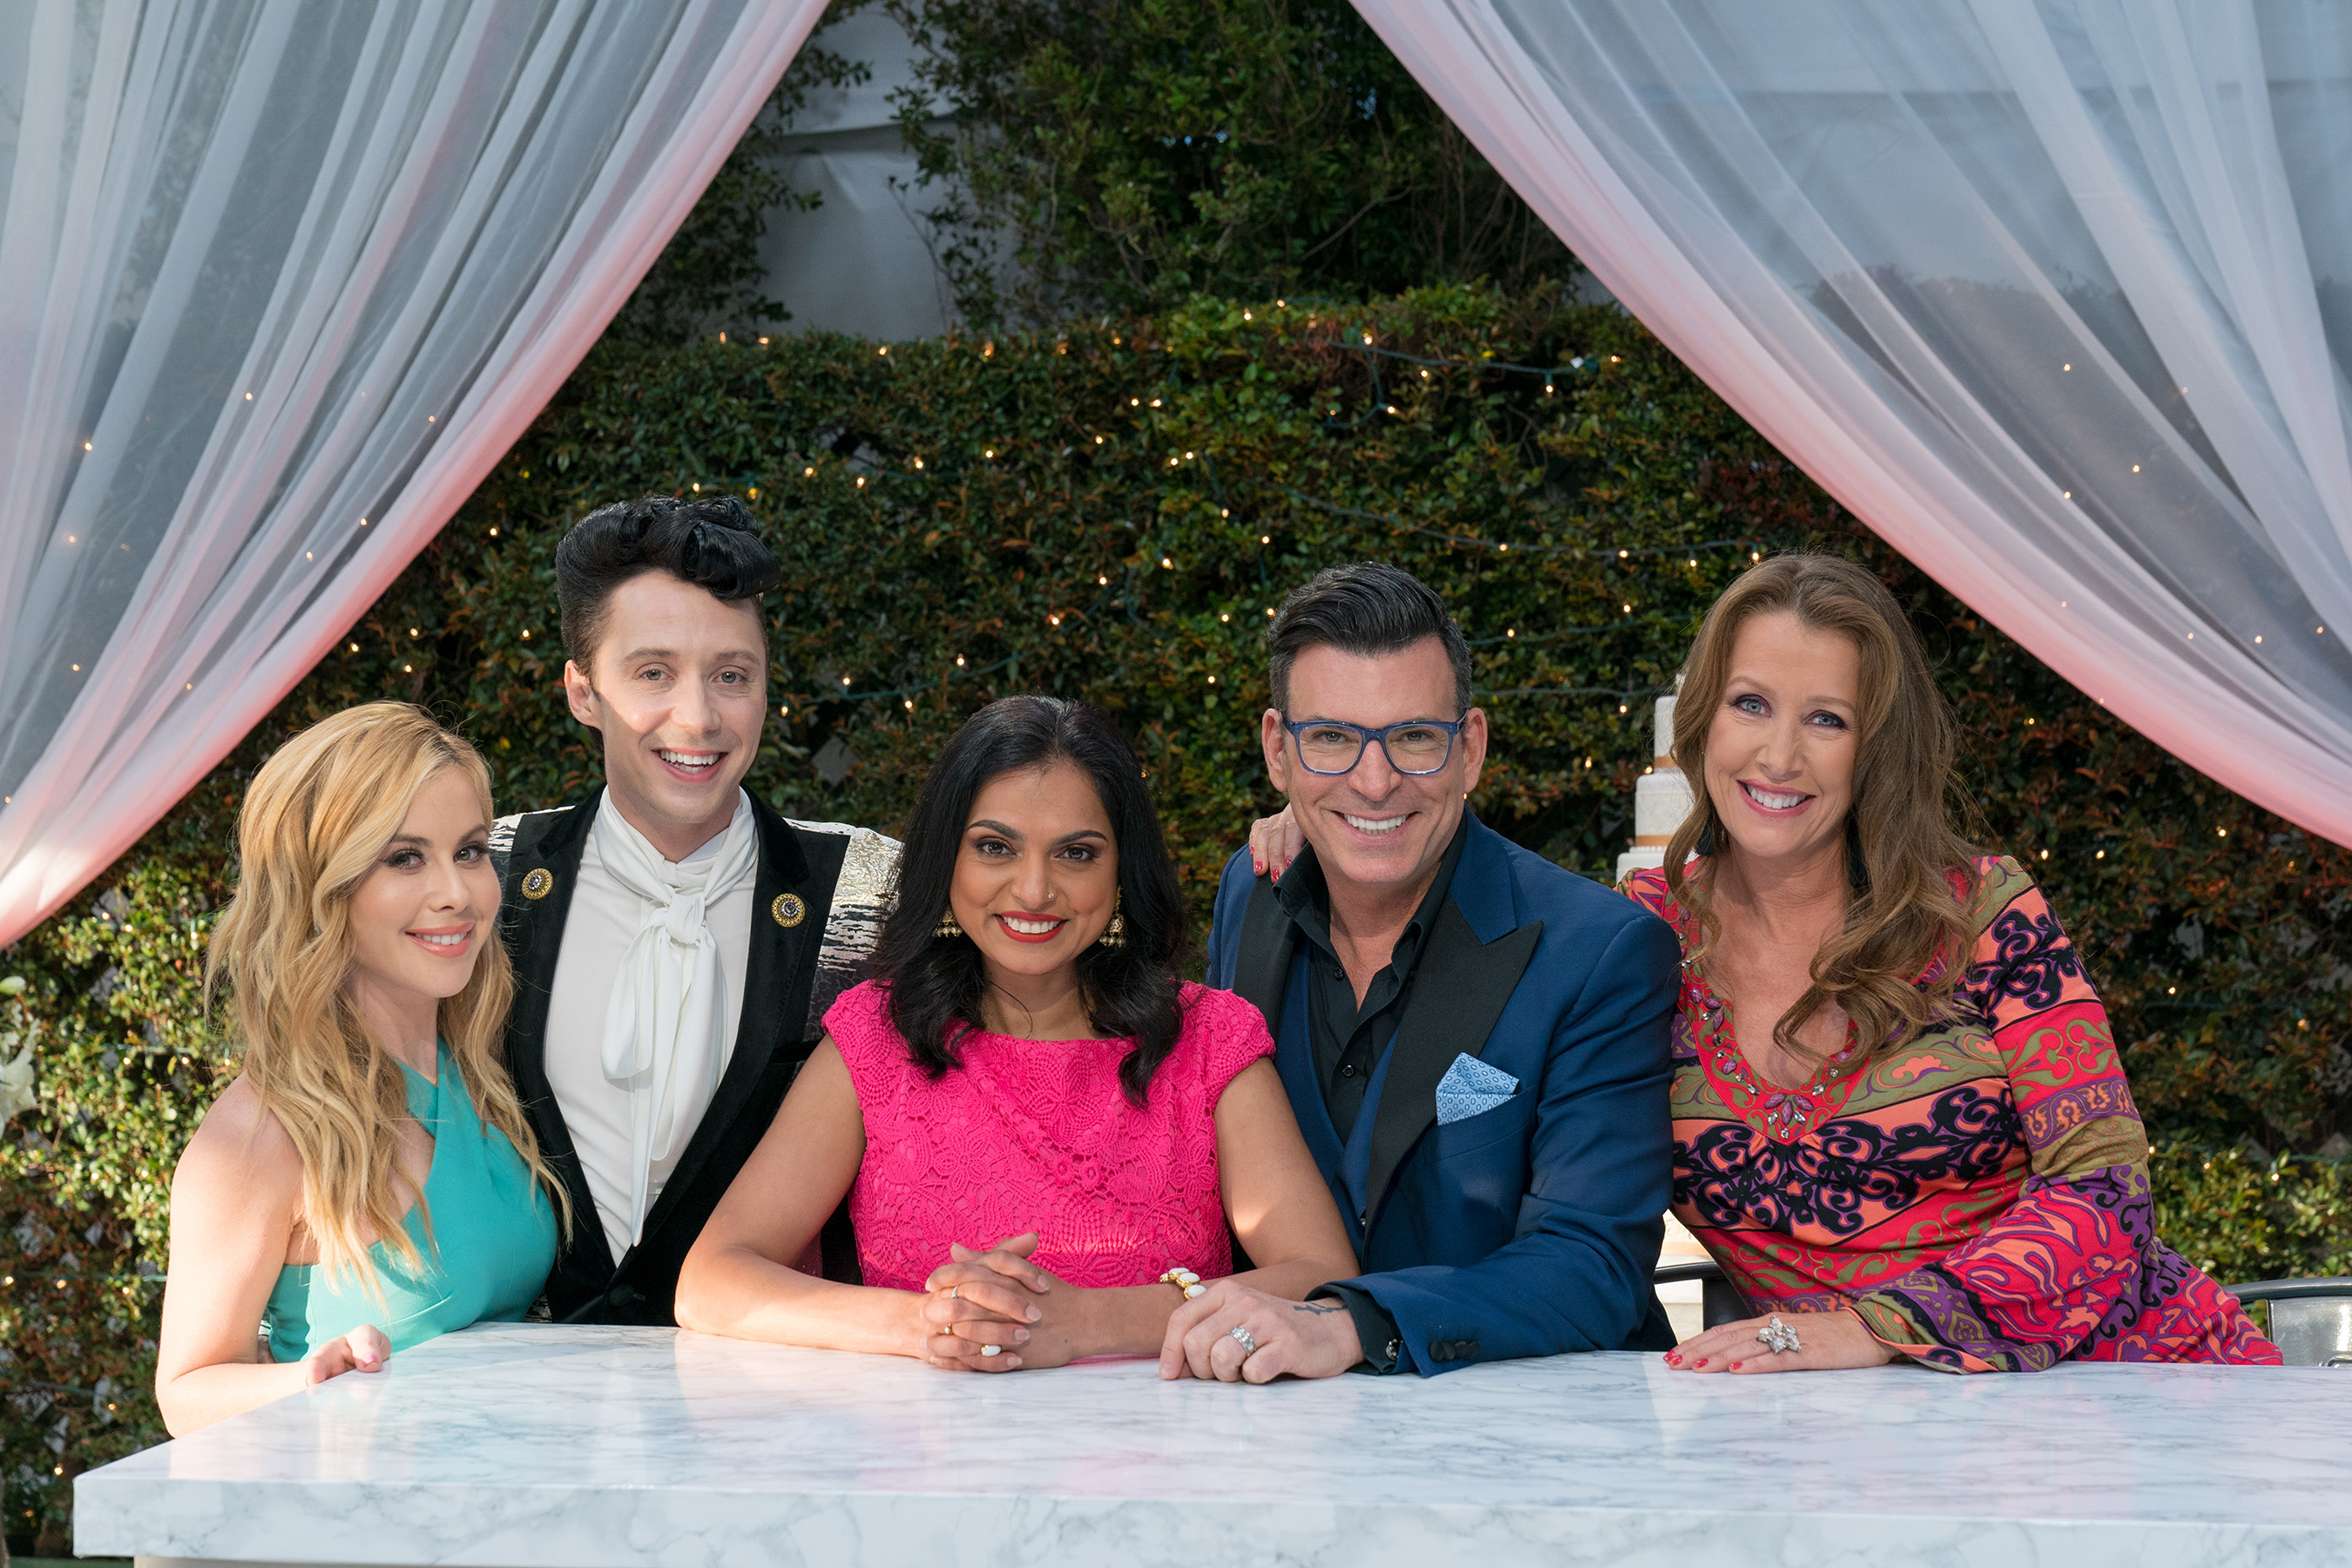 Tara Lipinski and Johnny Weir with judges Maneet Chauhan, David Tutera and Kimberly Bailey on Food Network's Wedding Cake Championship